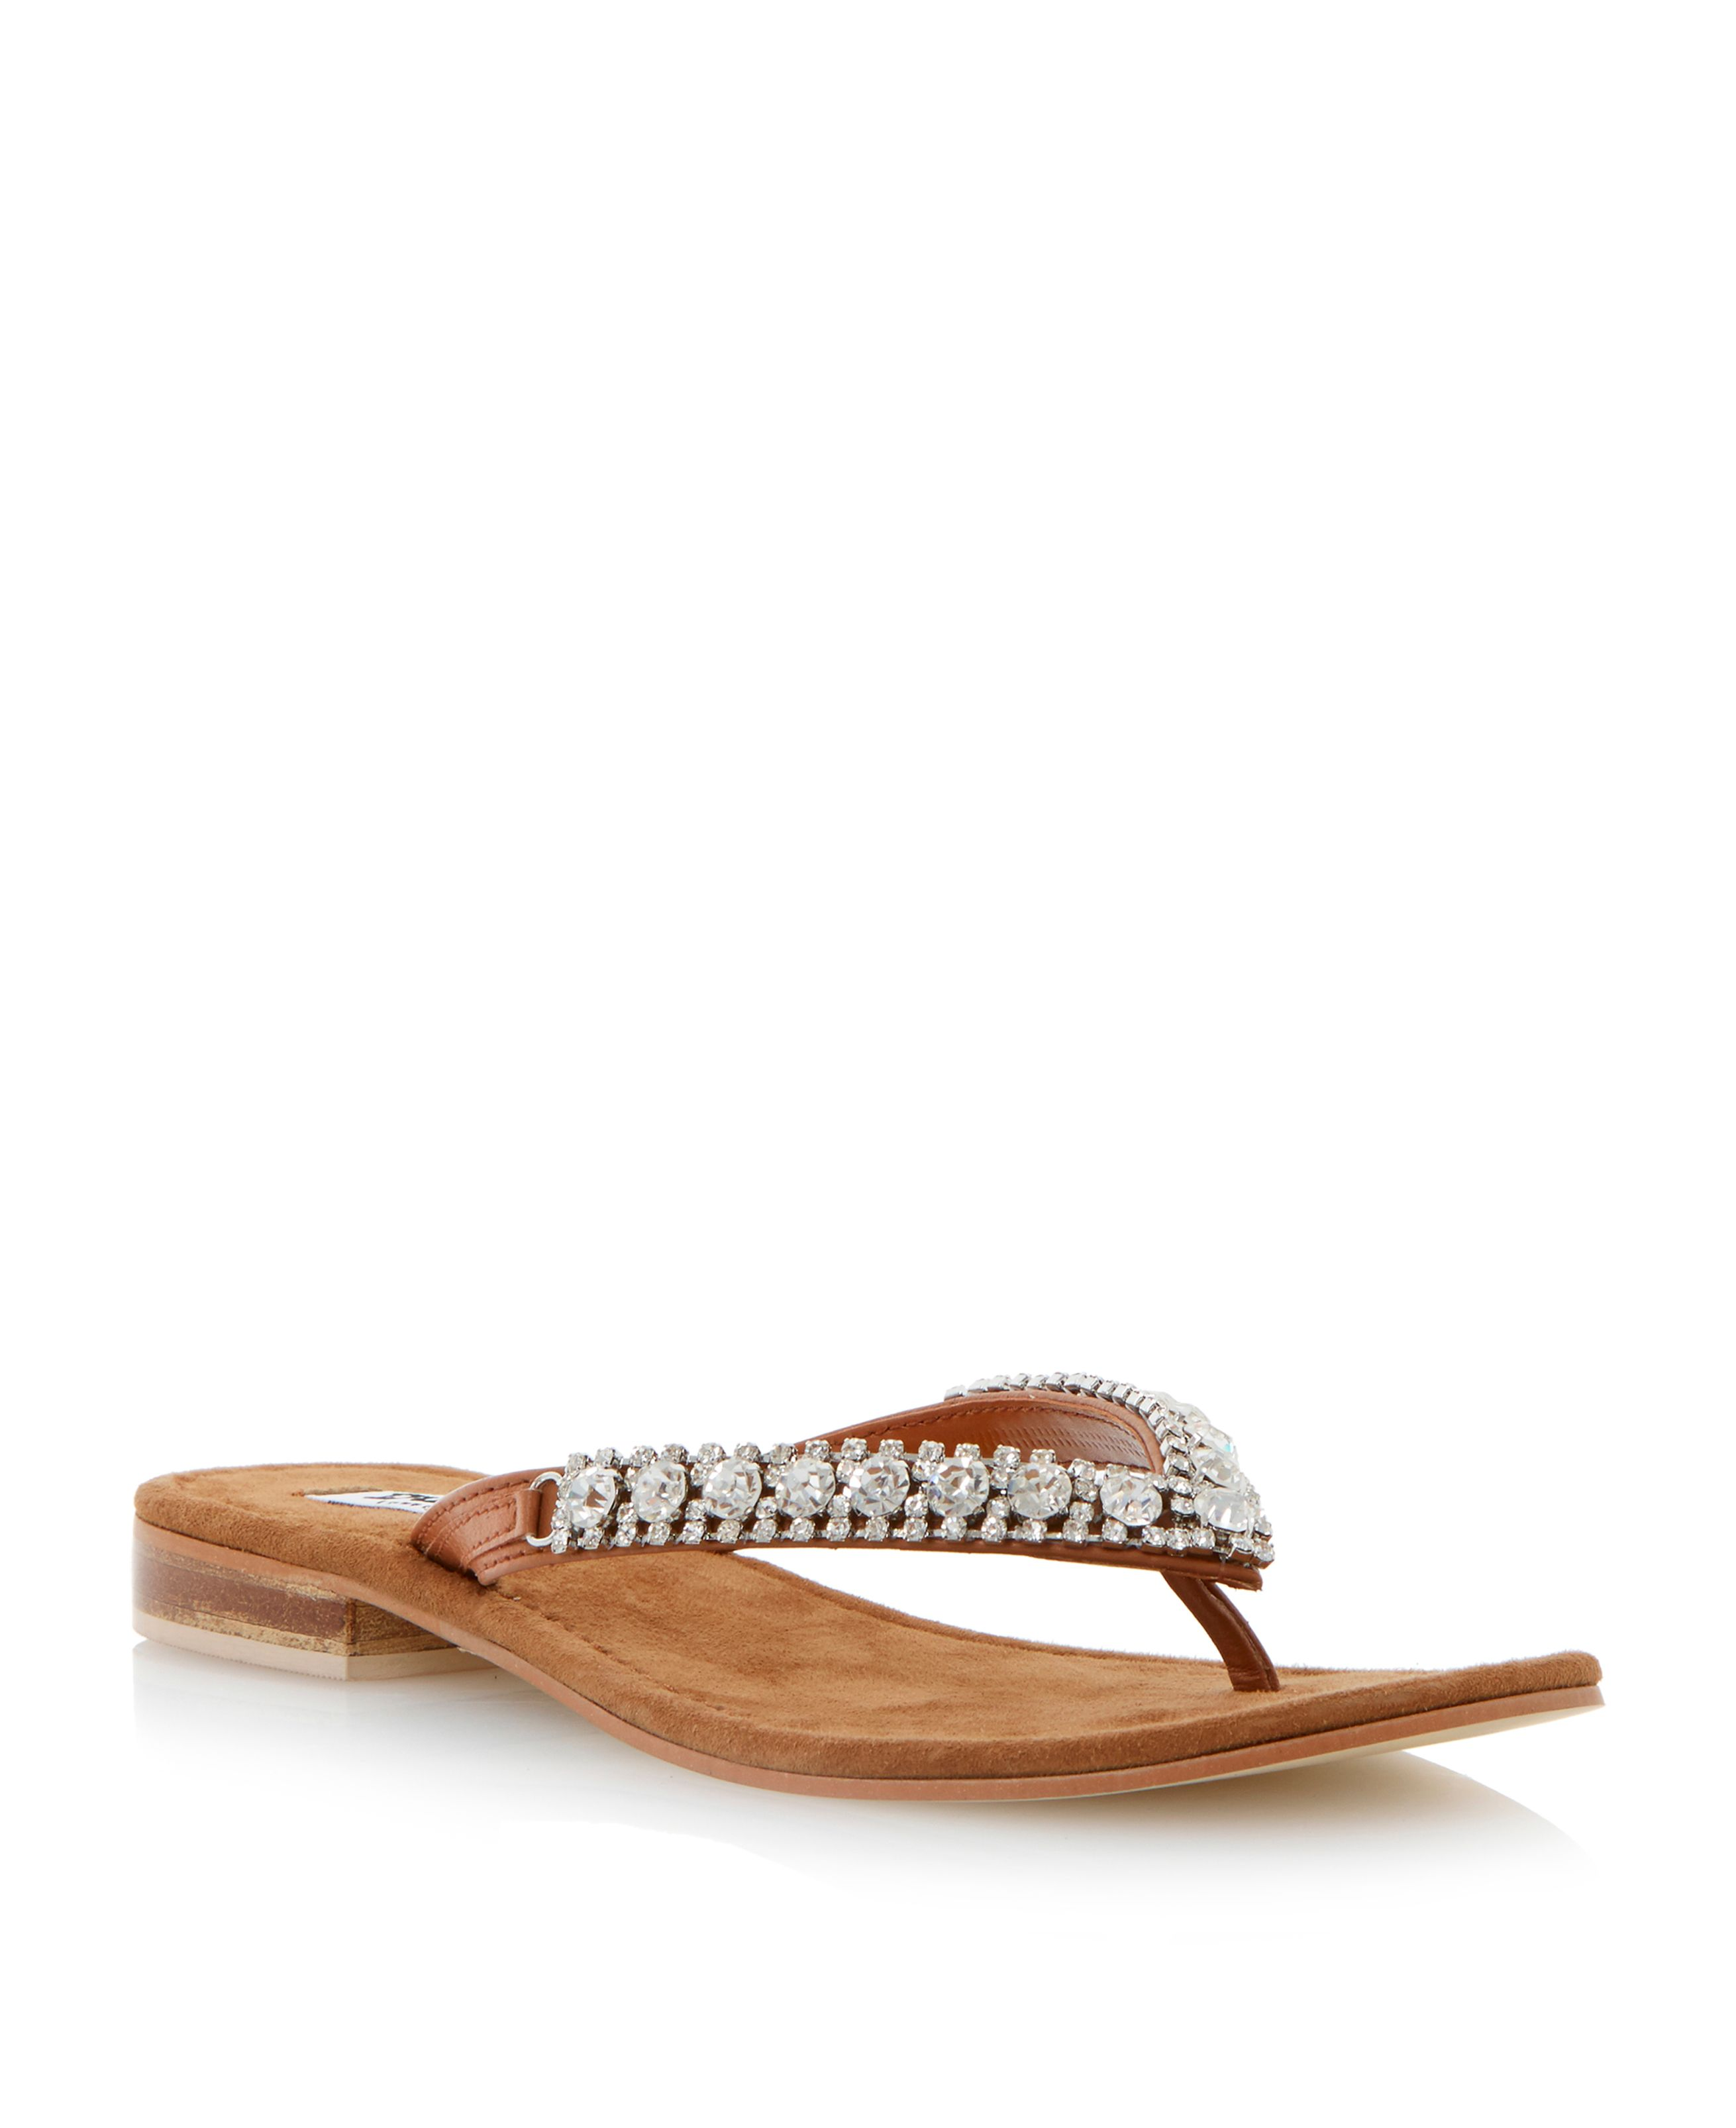 Kiki leather flat sandals